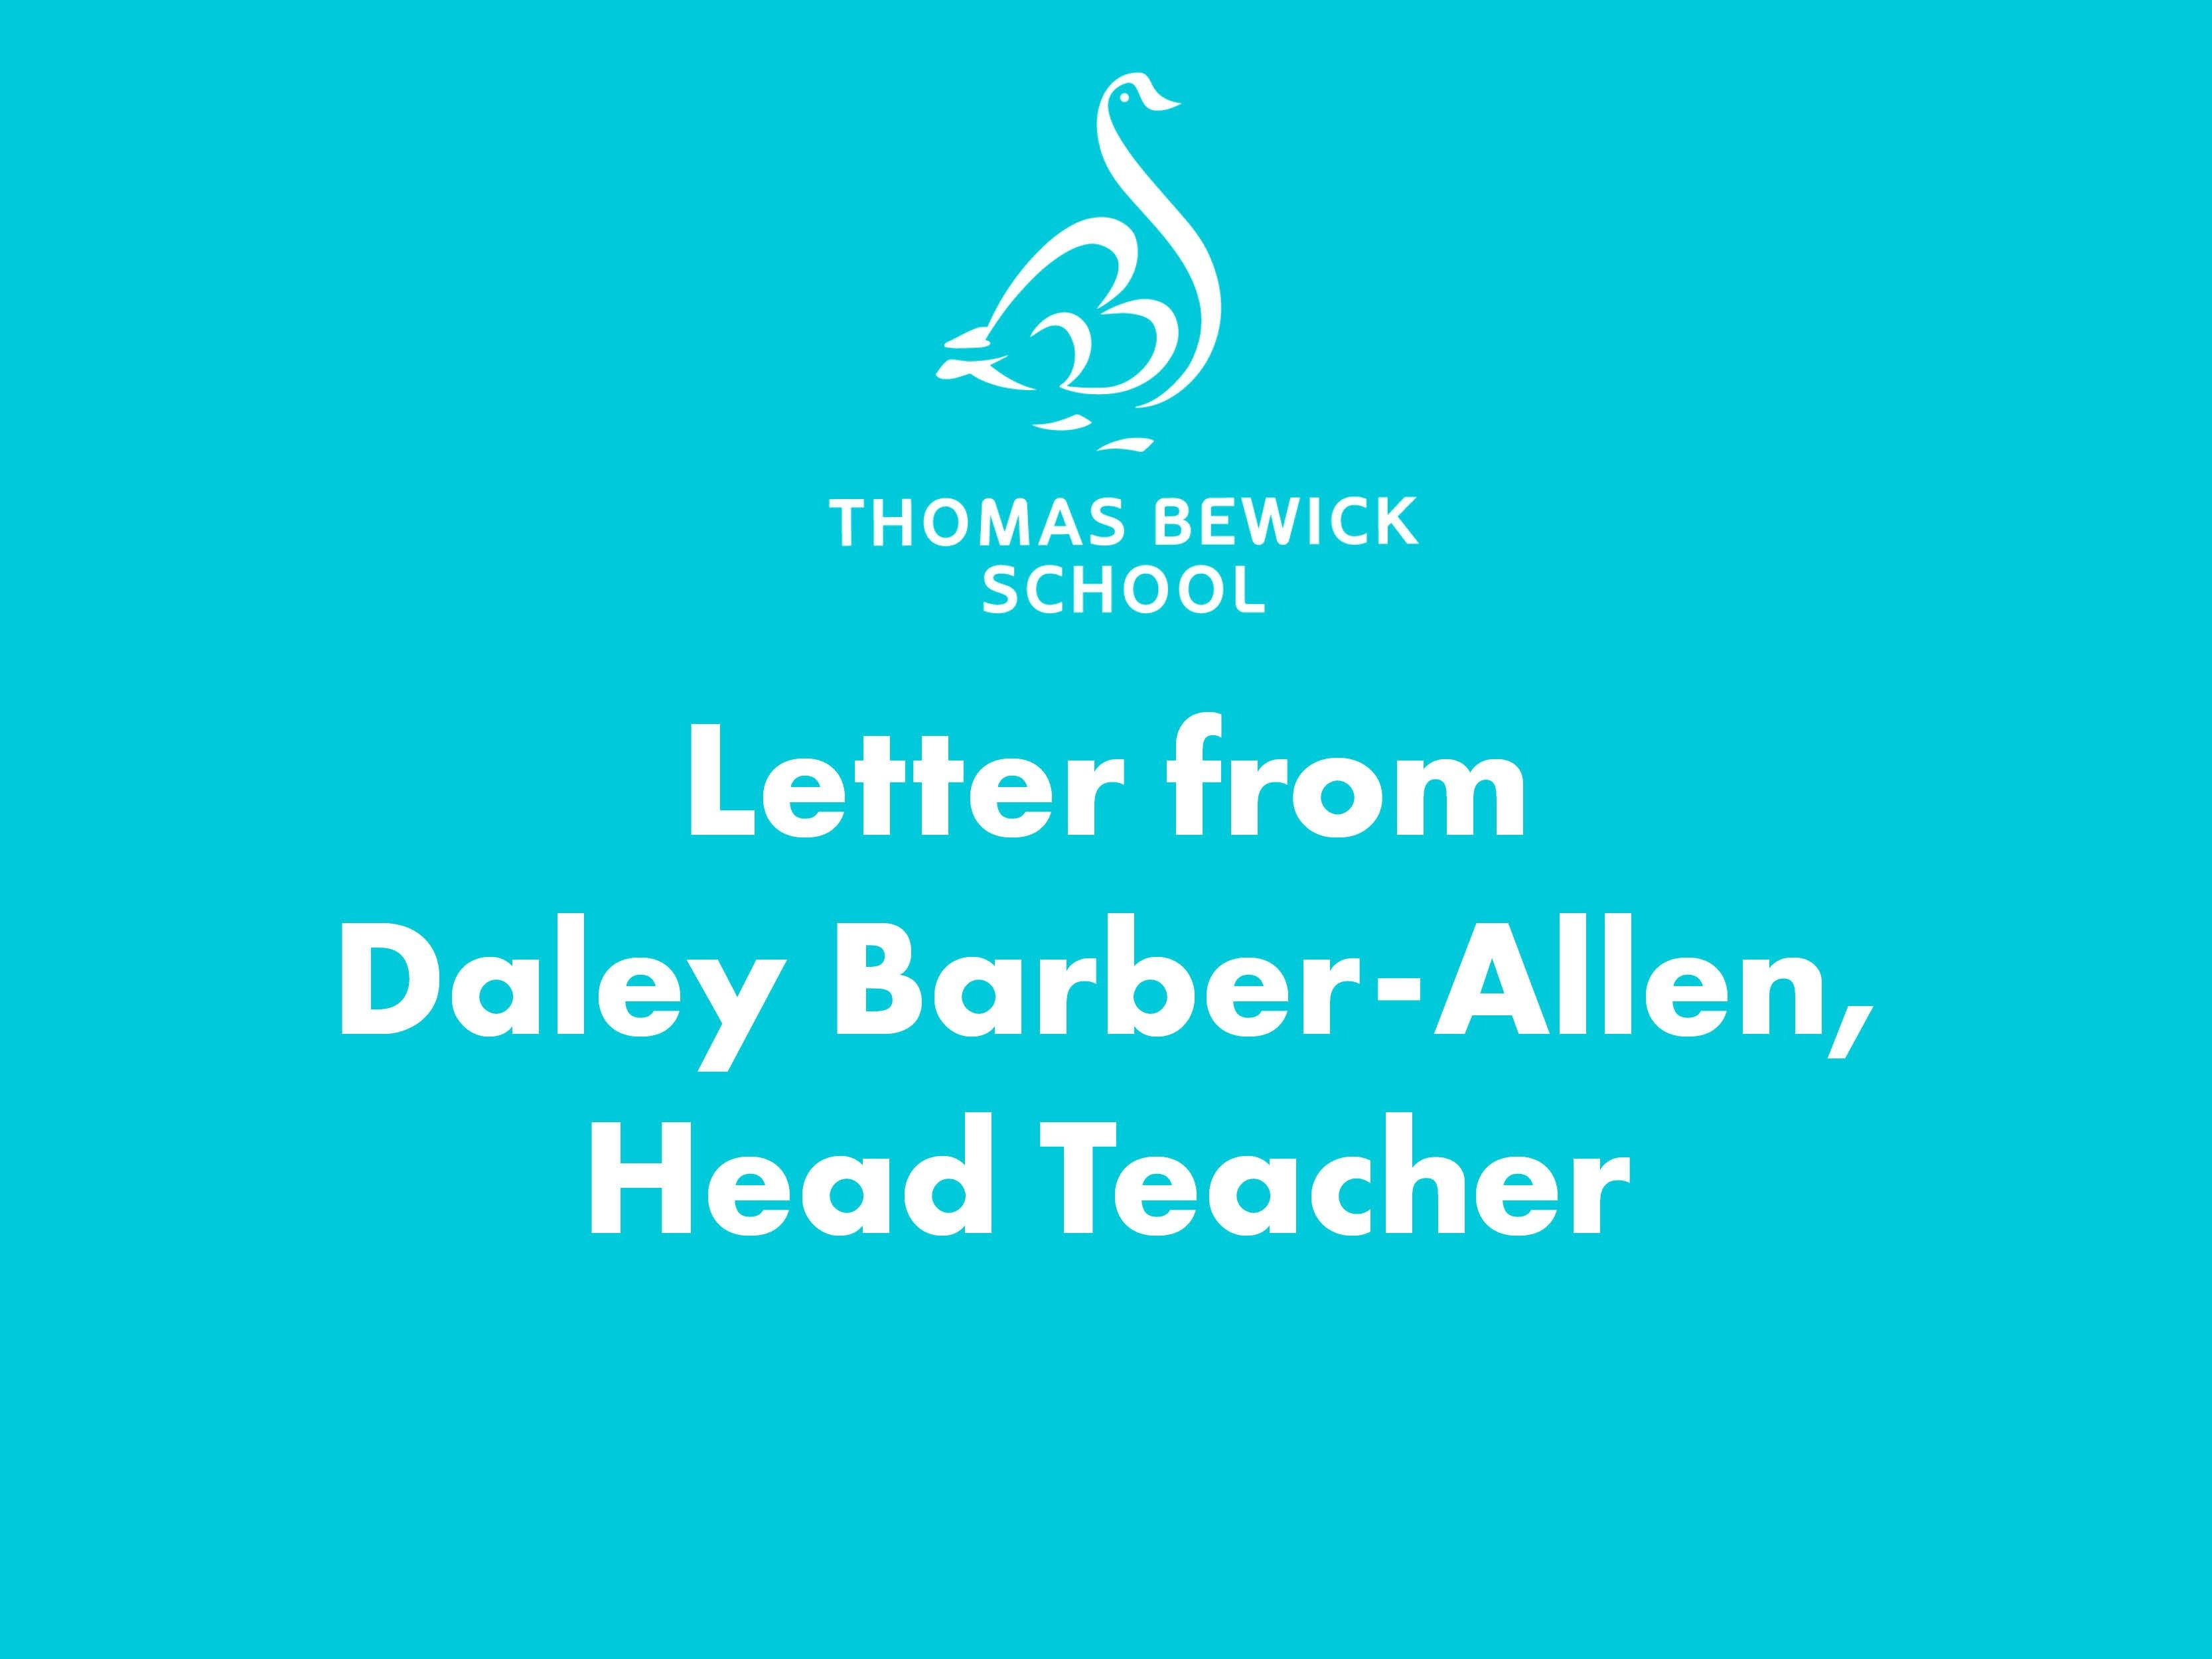 Message from Daley Barber-Allen